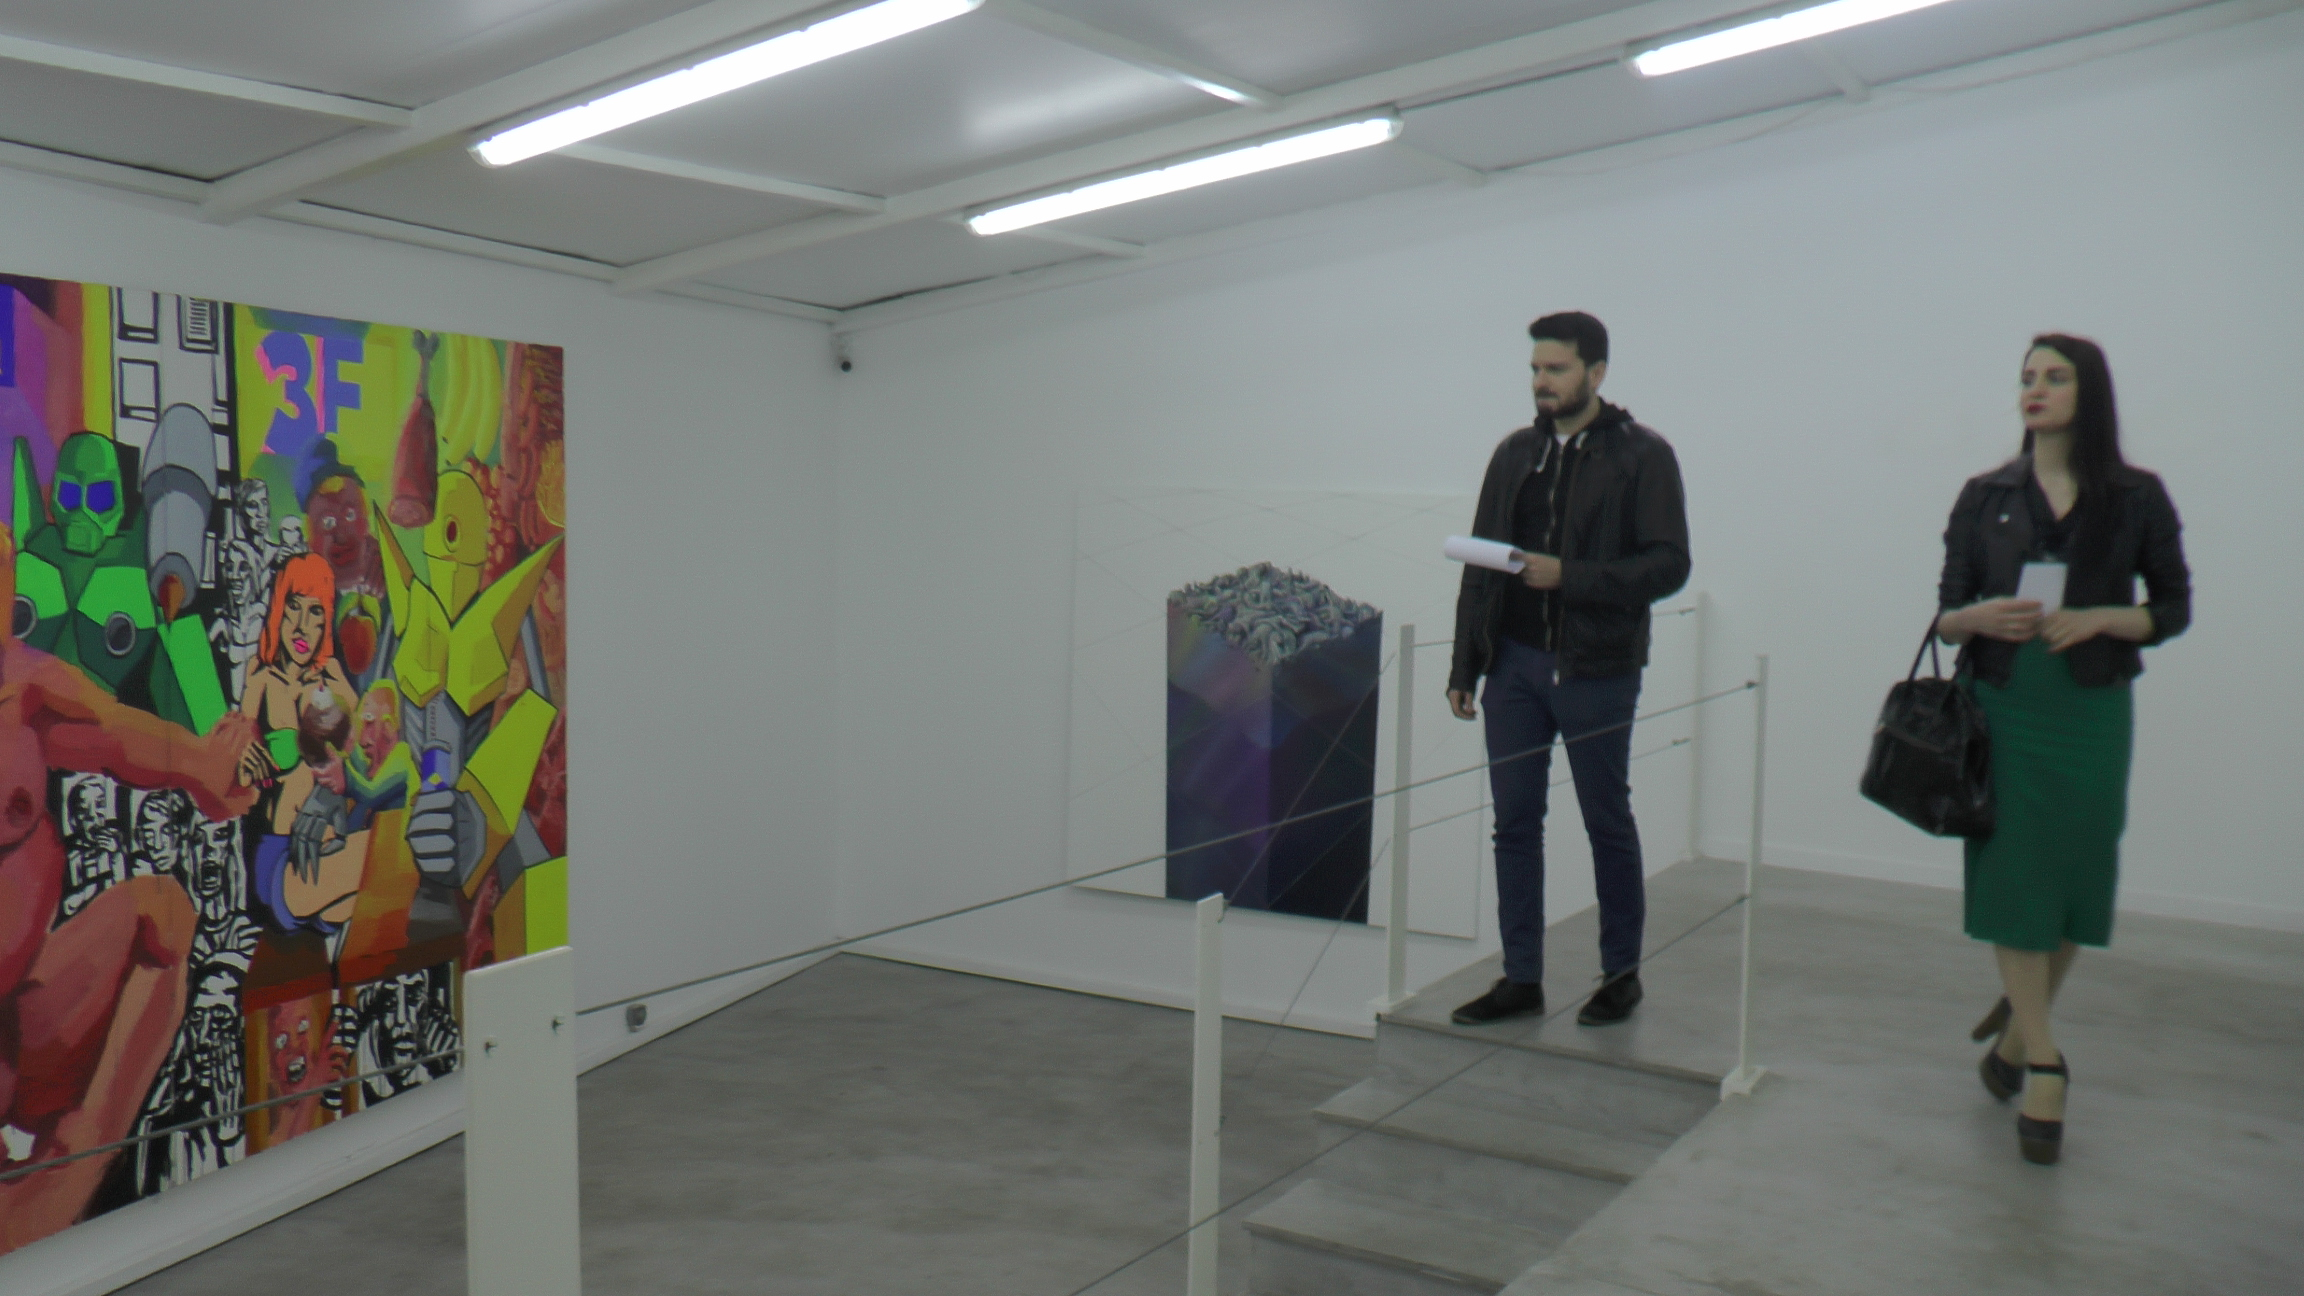 Lykourgos Porfyris  BAD PAINTING  Group exhibition at BETON7  March 23 - March 6, 2015